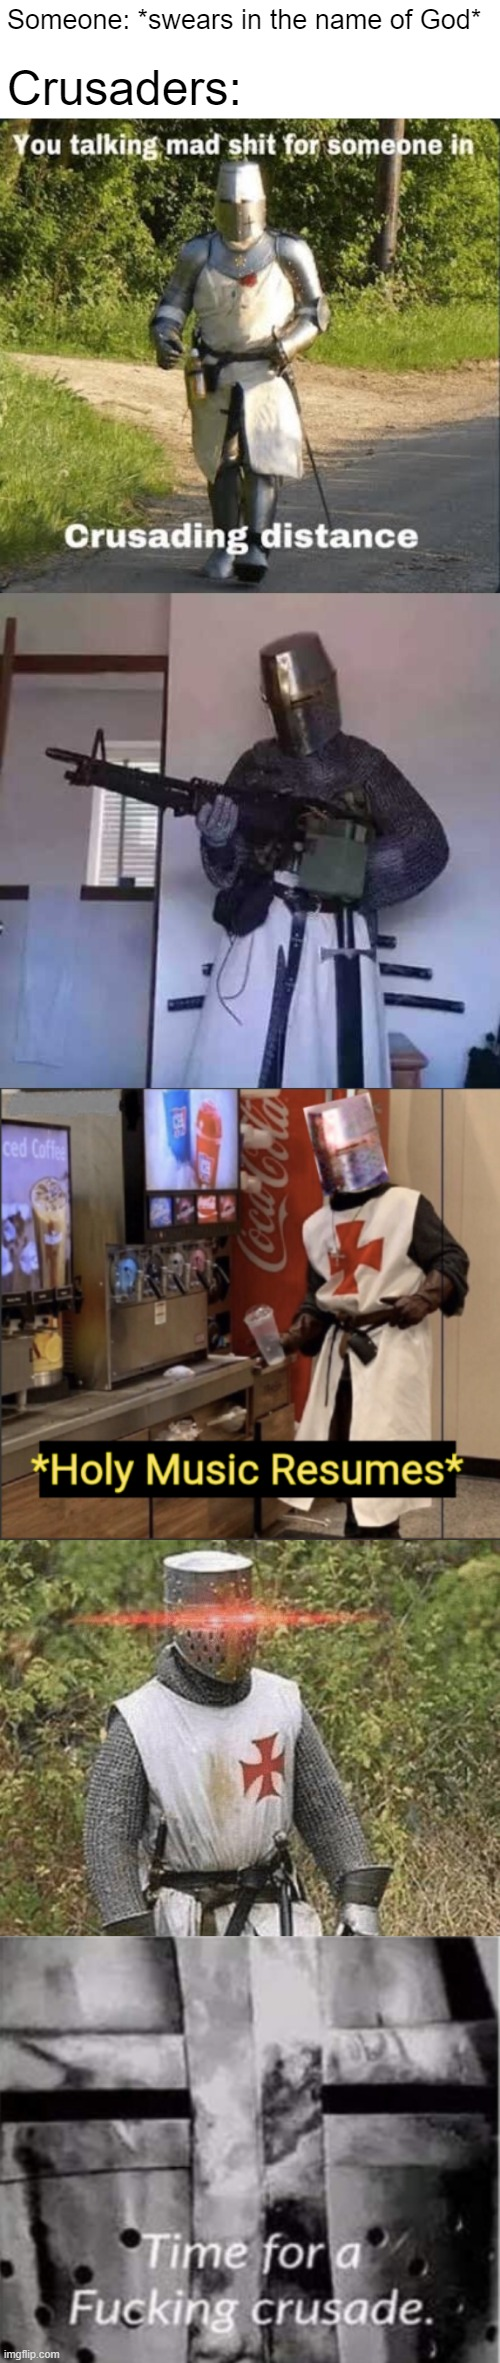 Someone: *swears in the name of God*; Crusaders: | image tagged in crusading distance,crusader knight with m60 machine gun,holy music resumes,growing stronger crusader,time for a crusade | made w/ Imgflip meme maker